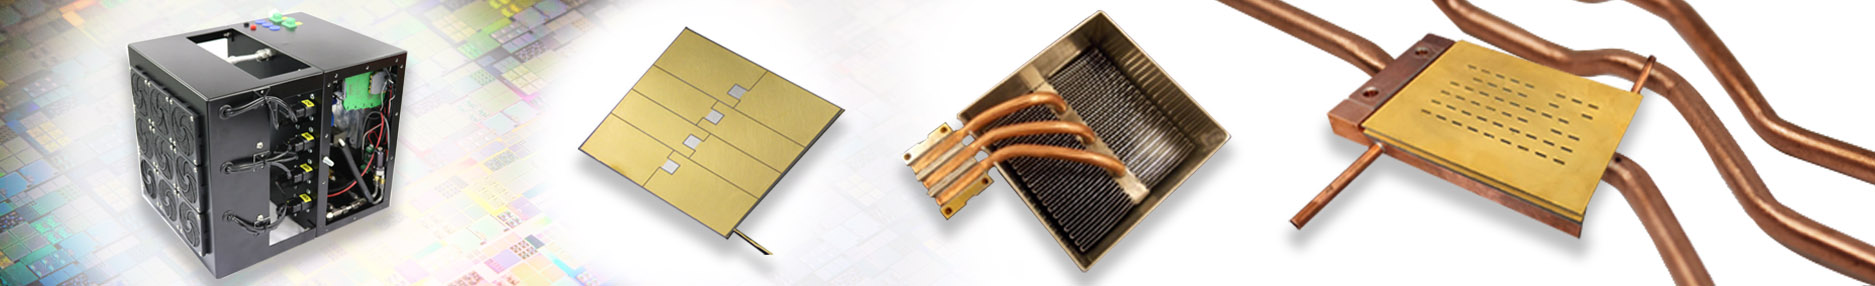 Thermal management solutions for the photonics industry, ACT creates custom solutions